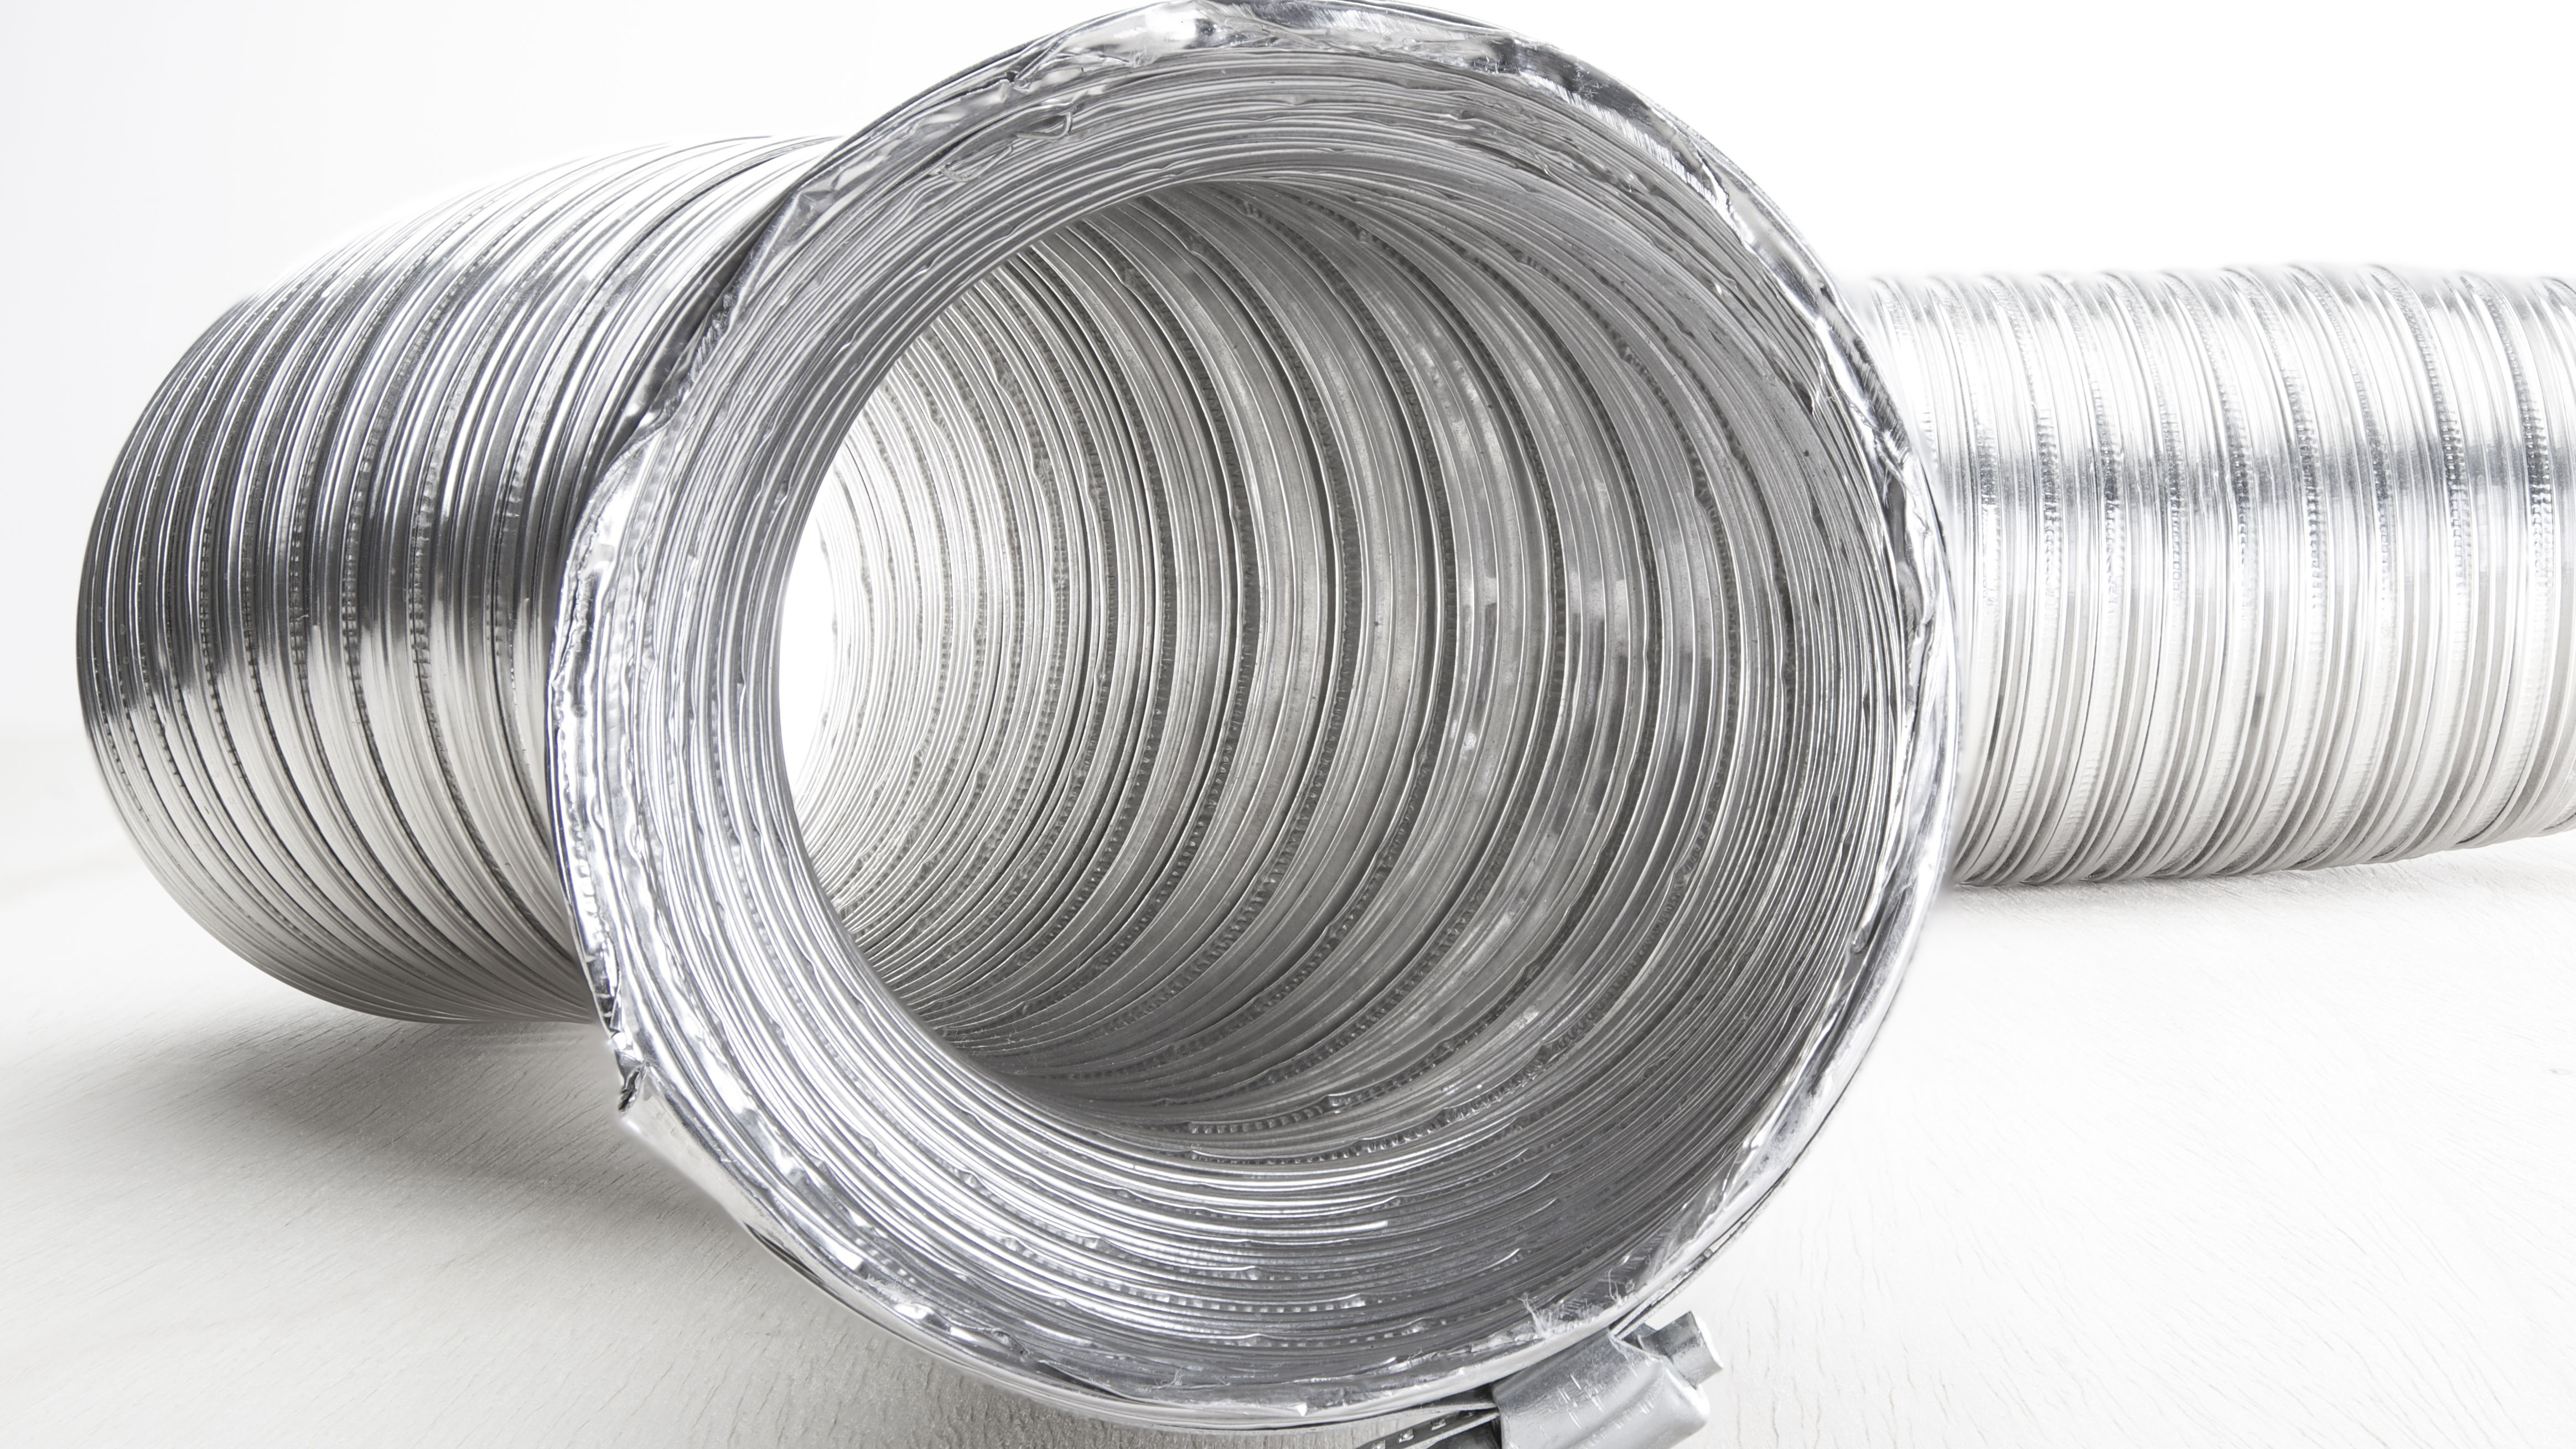 Dryer Vent Installation and You